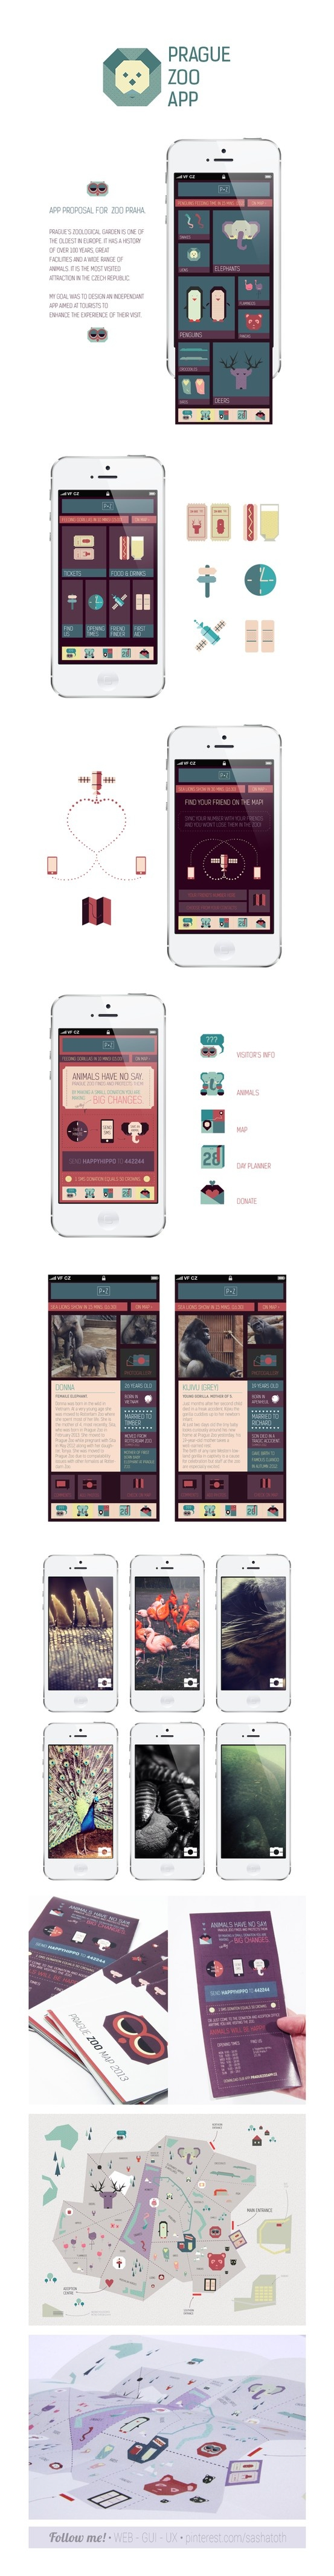 Prague Zoo application concept by Alina Kotova, on Behance *** #iphone #app